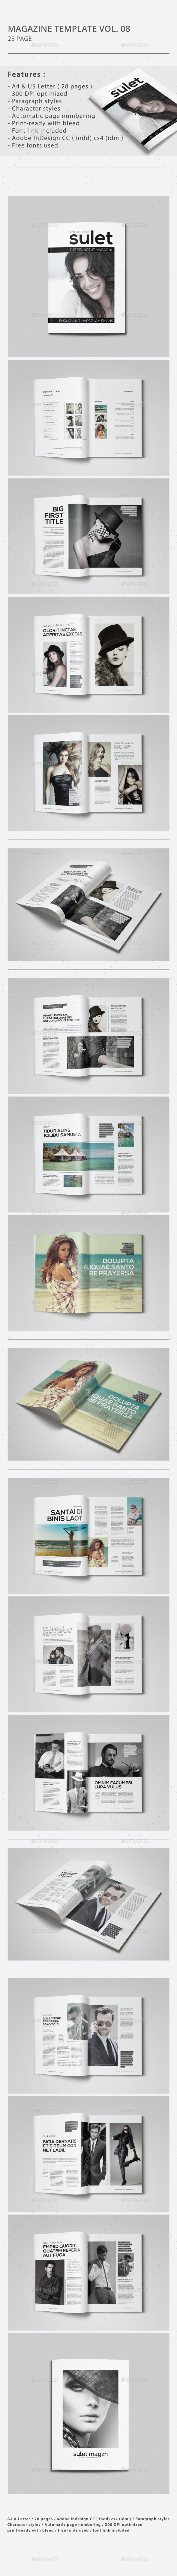 GraphicRiver Indesign Magazine Template Vol.08 9264198